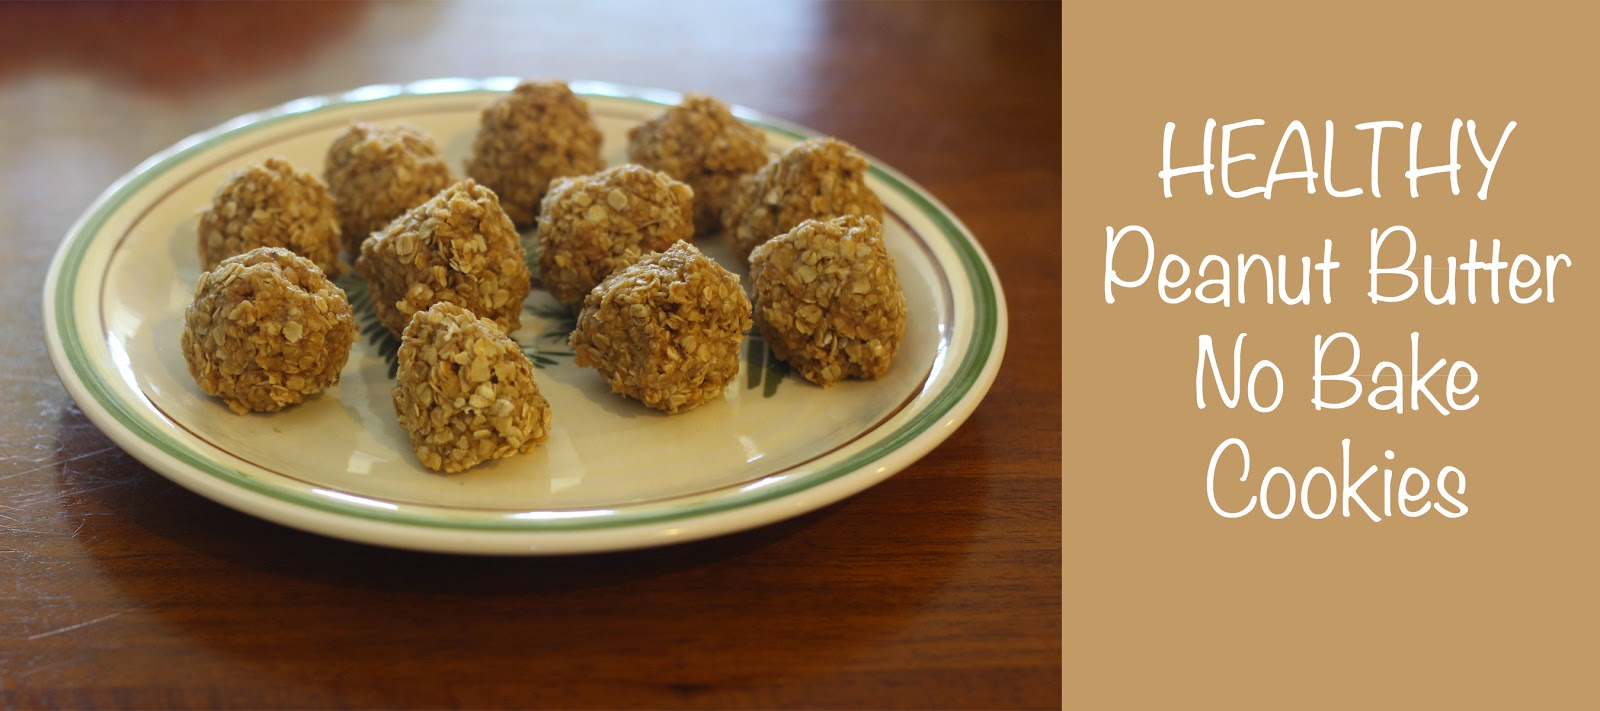 Skinny Latte Mommy: Healthy Peanut Butter No Bake Cookie ...